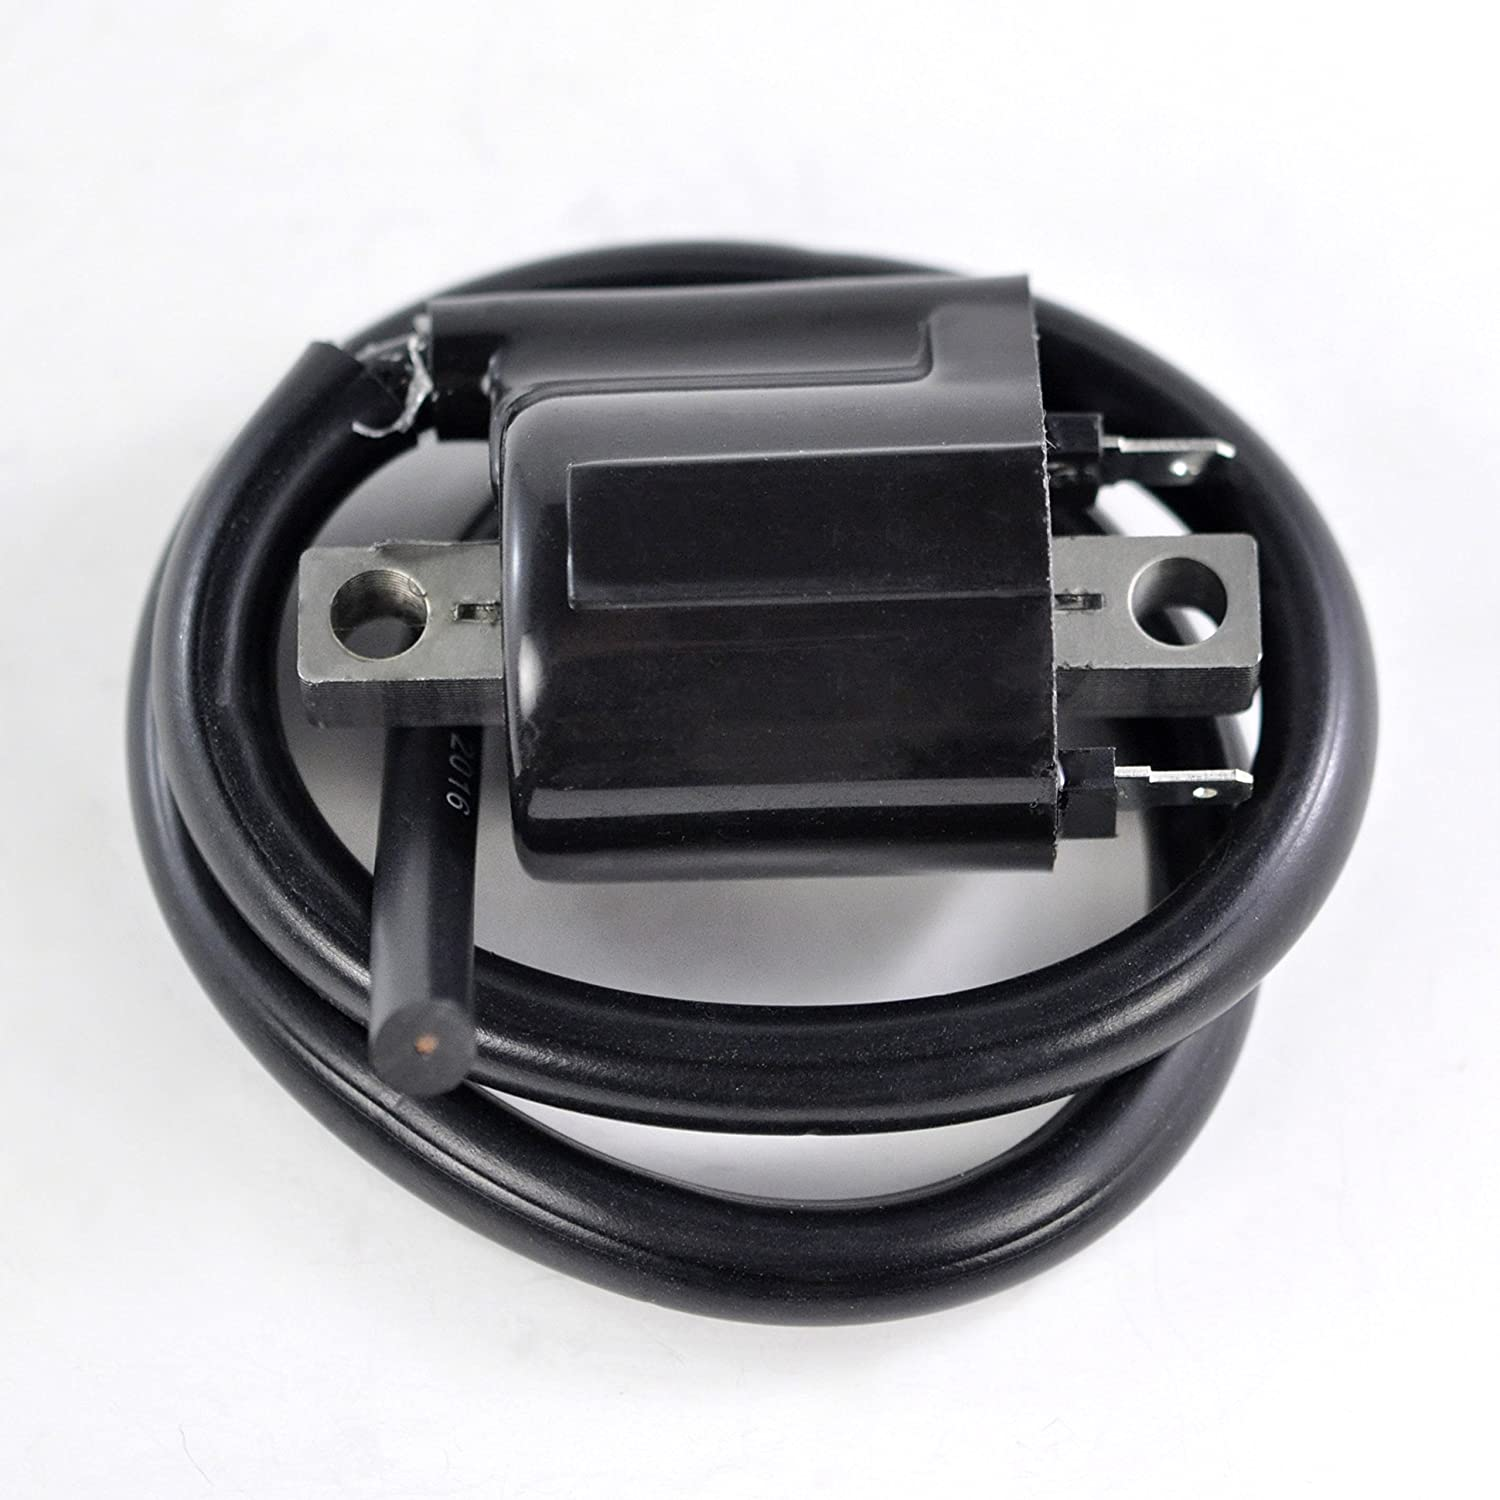 External Ignition Coil For Yamaha Roadliner Stratoliner 2008 Wiring Midnight S Vxs V Star Tourer 950 1900 2006 2007 2009 2010 2011 2012 2013 2014 2015